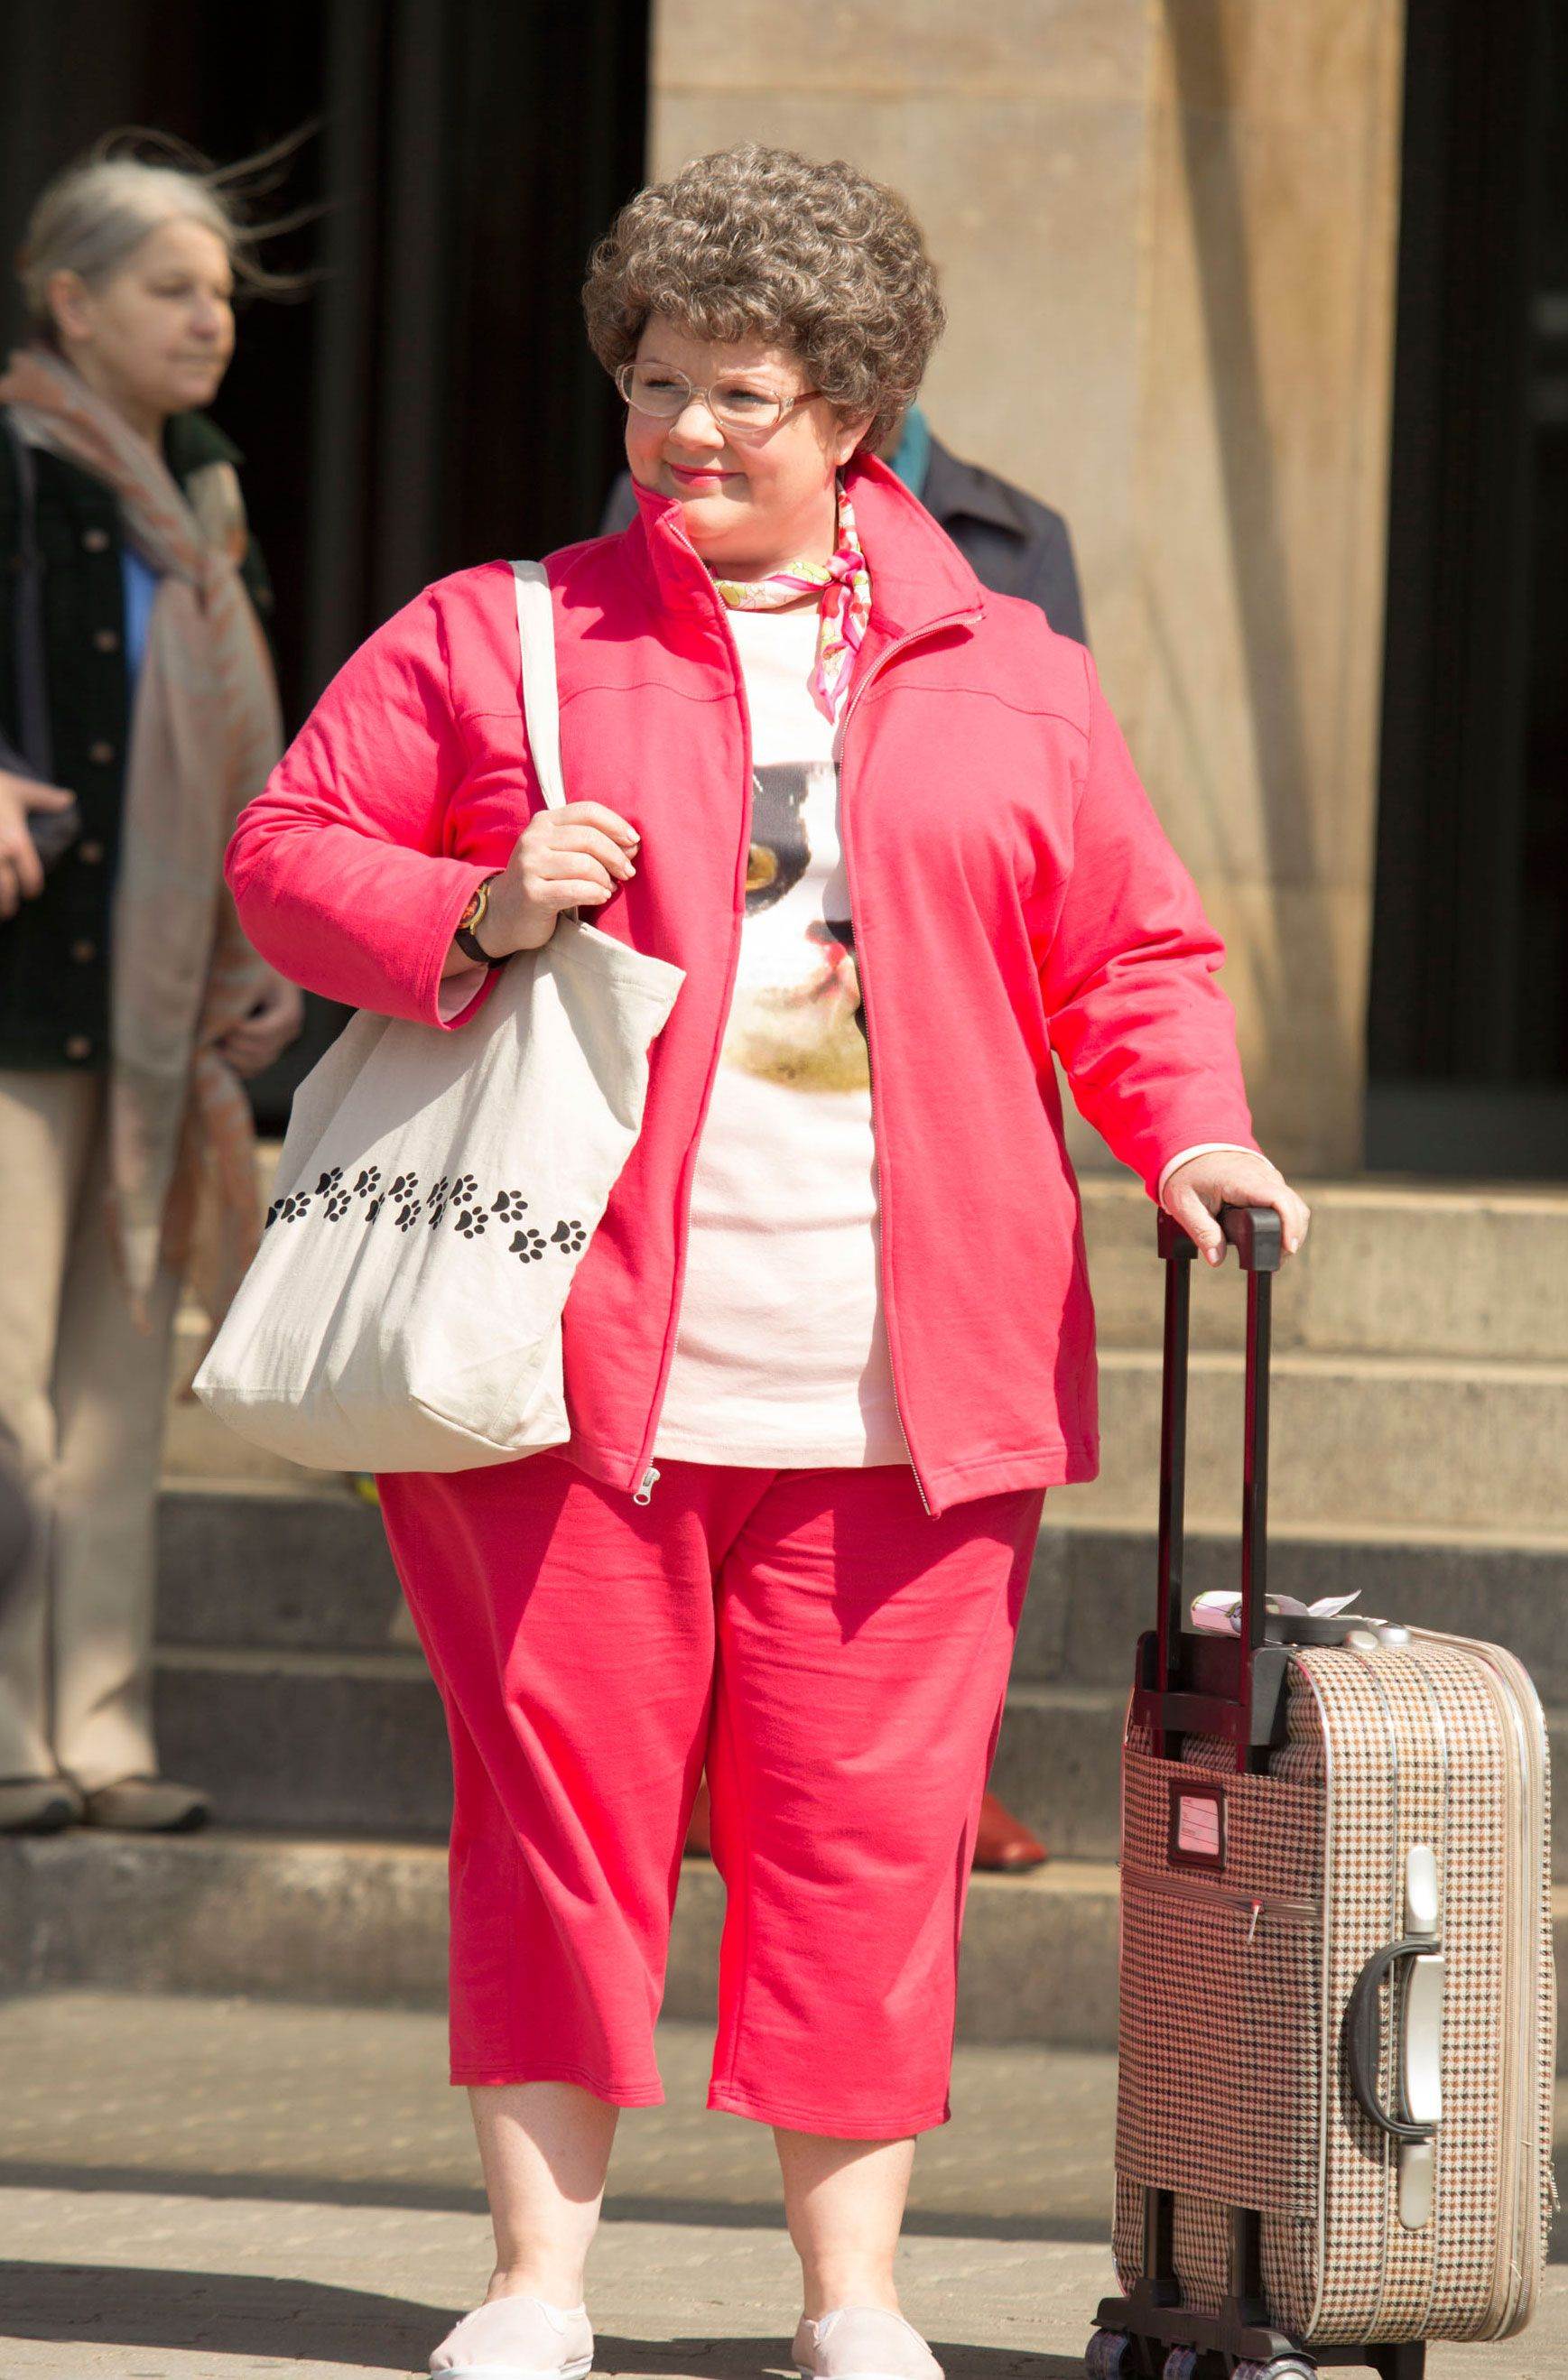 First Green and Red Band Spy Movie Trailers Featuring Melissa McCarthy ...